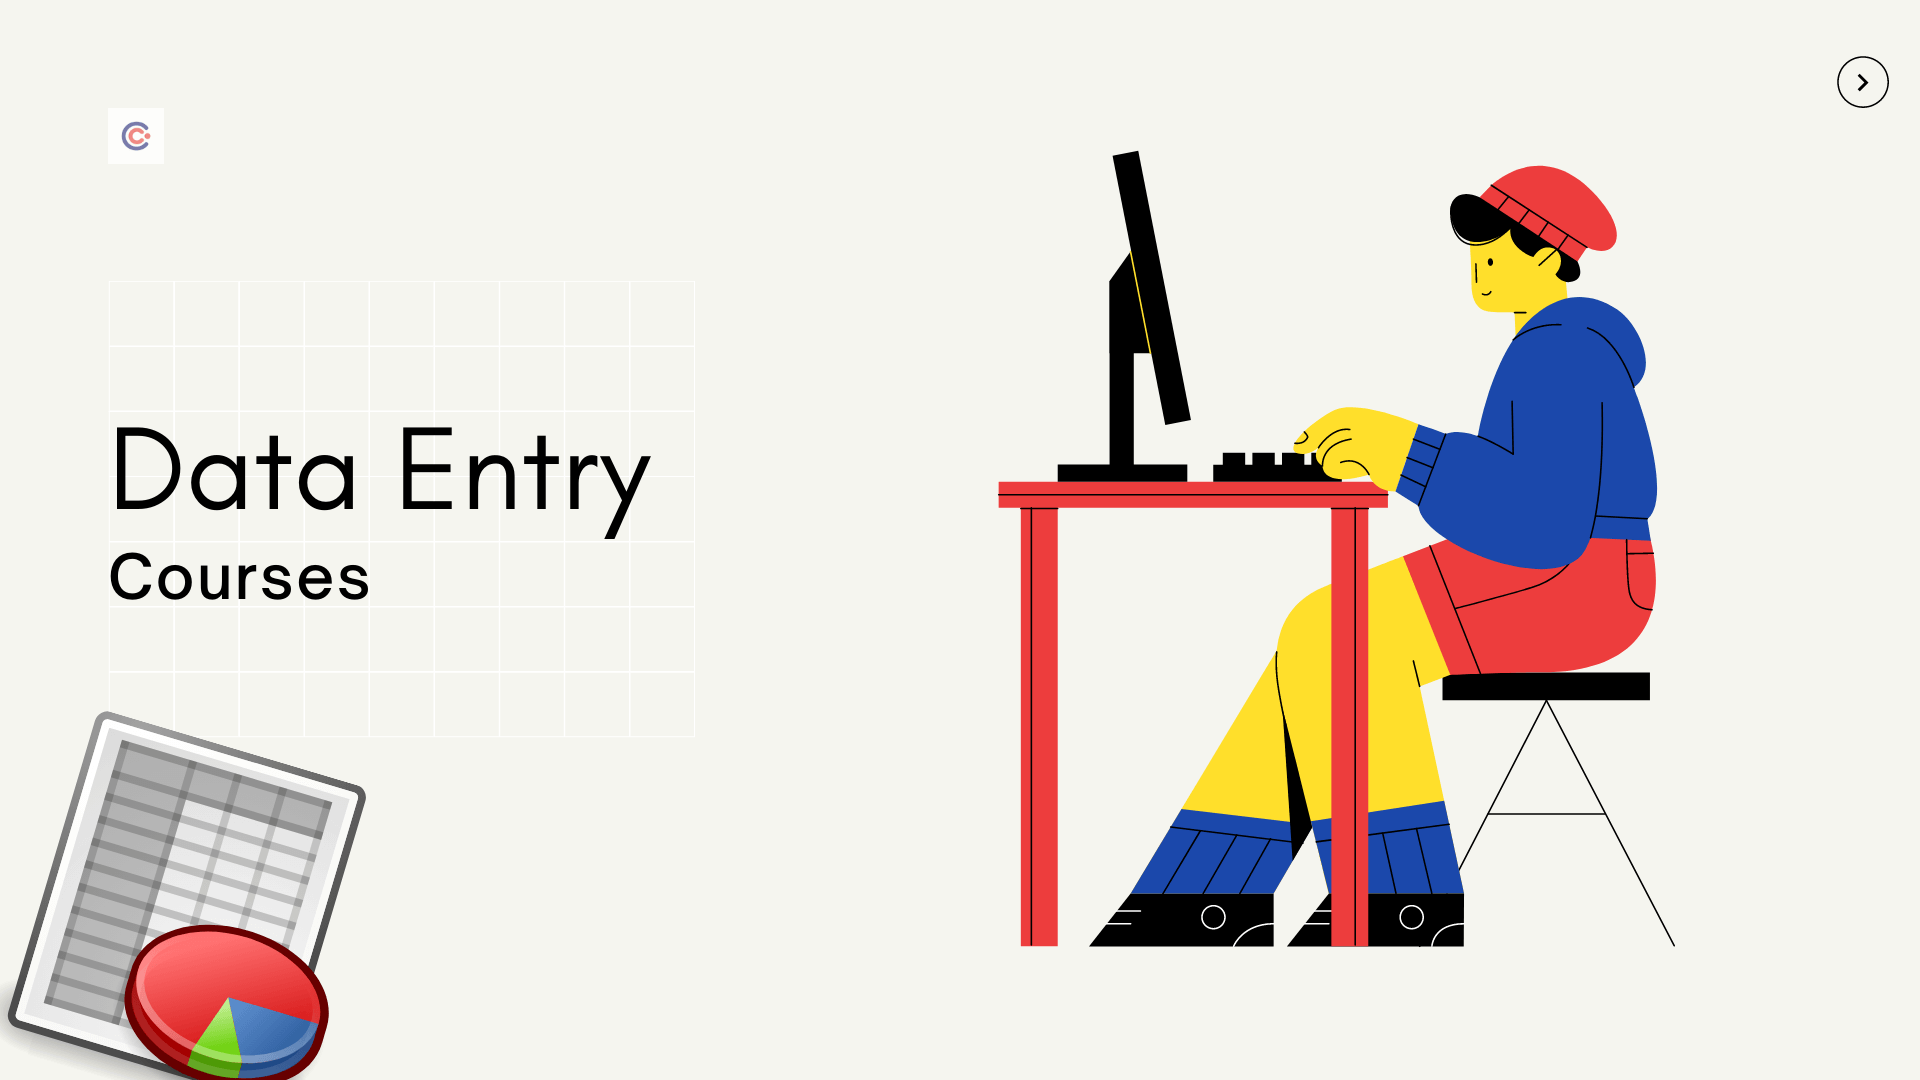 6 Best Data Entry Courses - Learn Data Entry Online